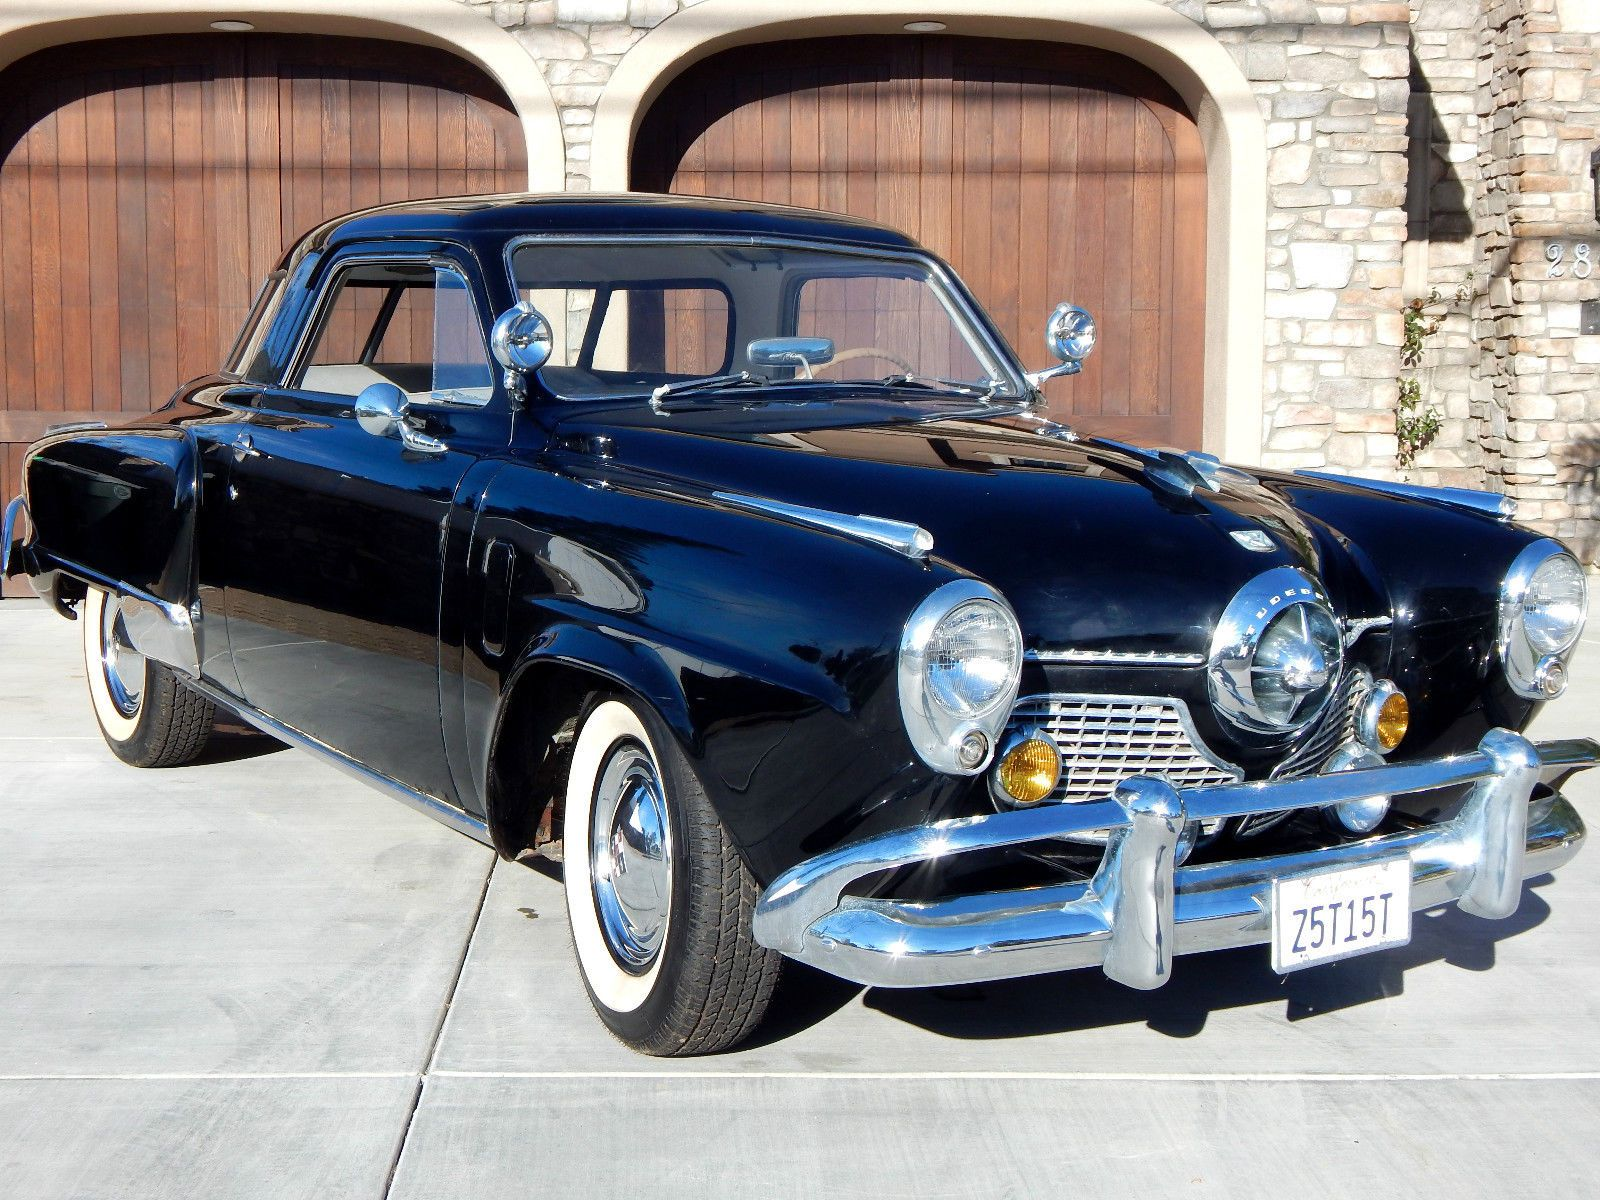 1951 Studebaker Commander Regal Starlight V8 Bullet Nose Coupe